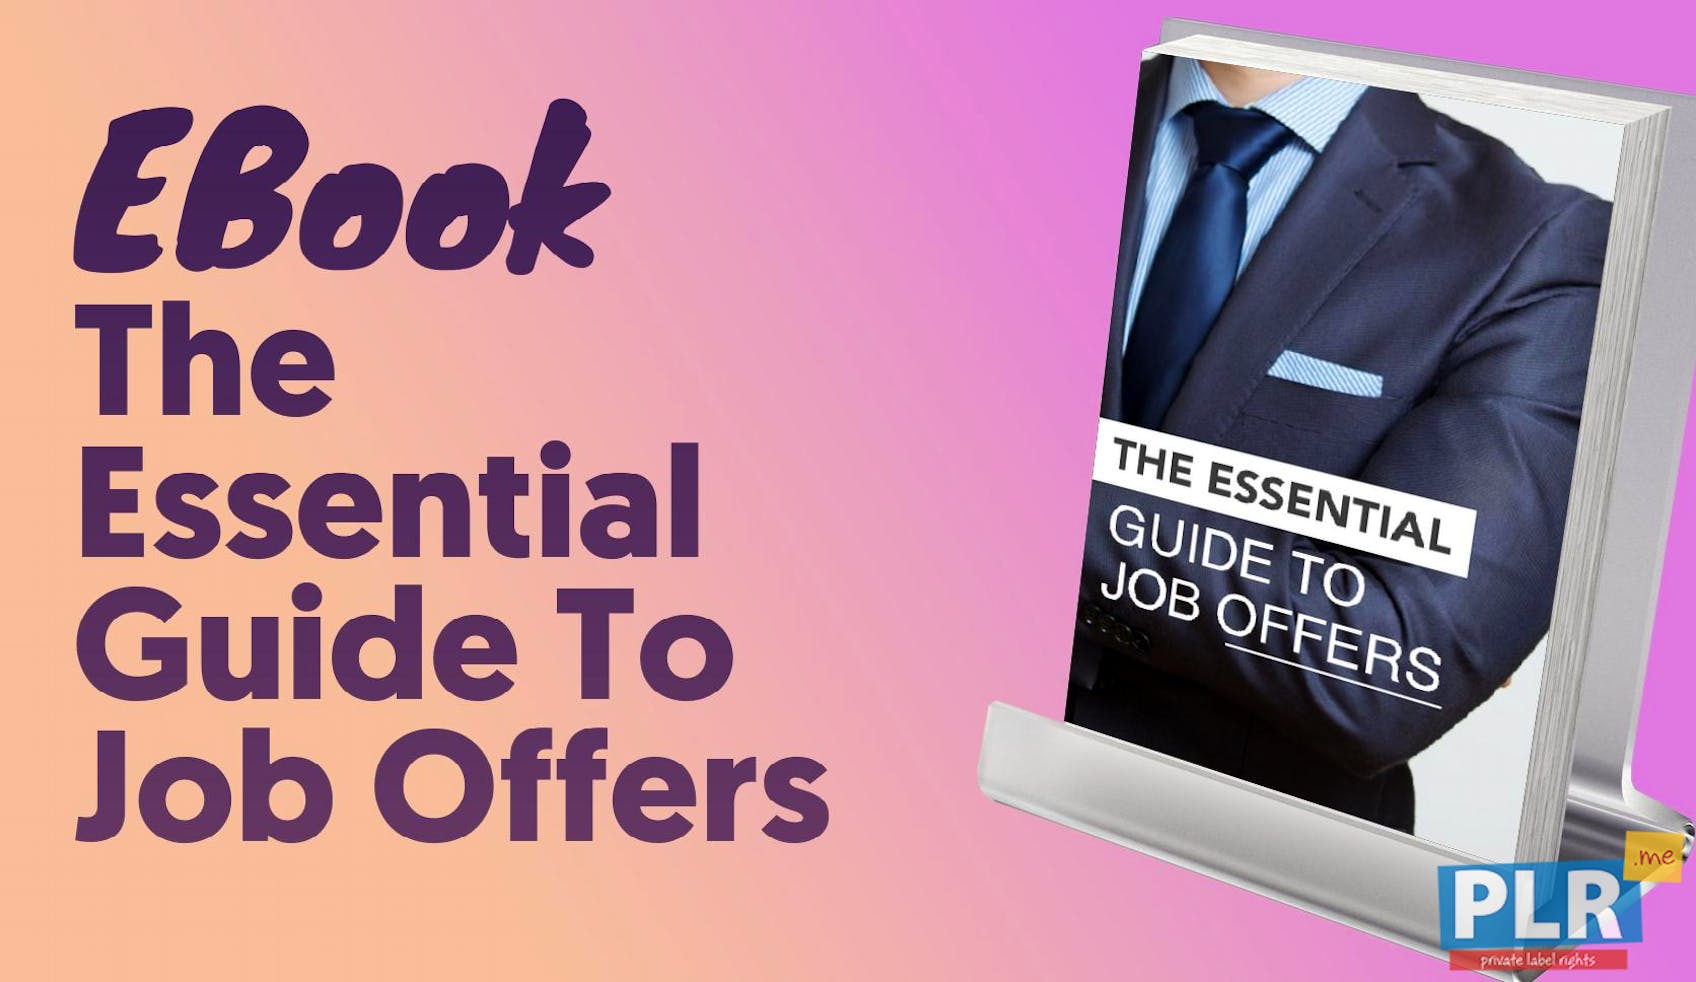 The Essential Guide To Job Offers